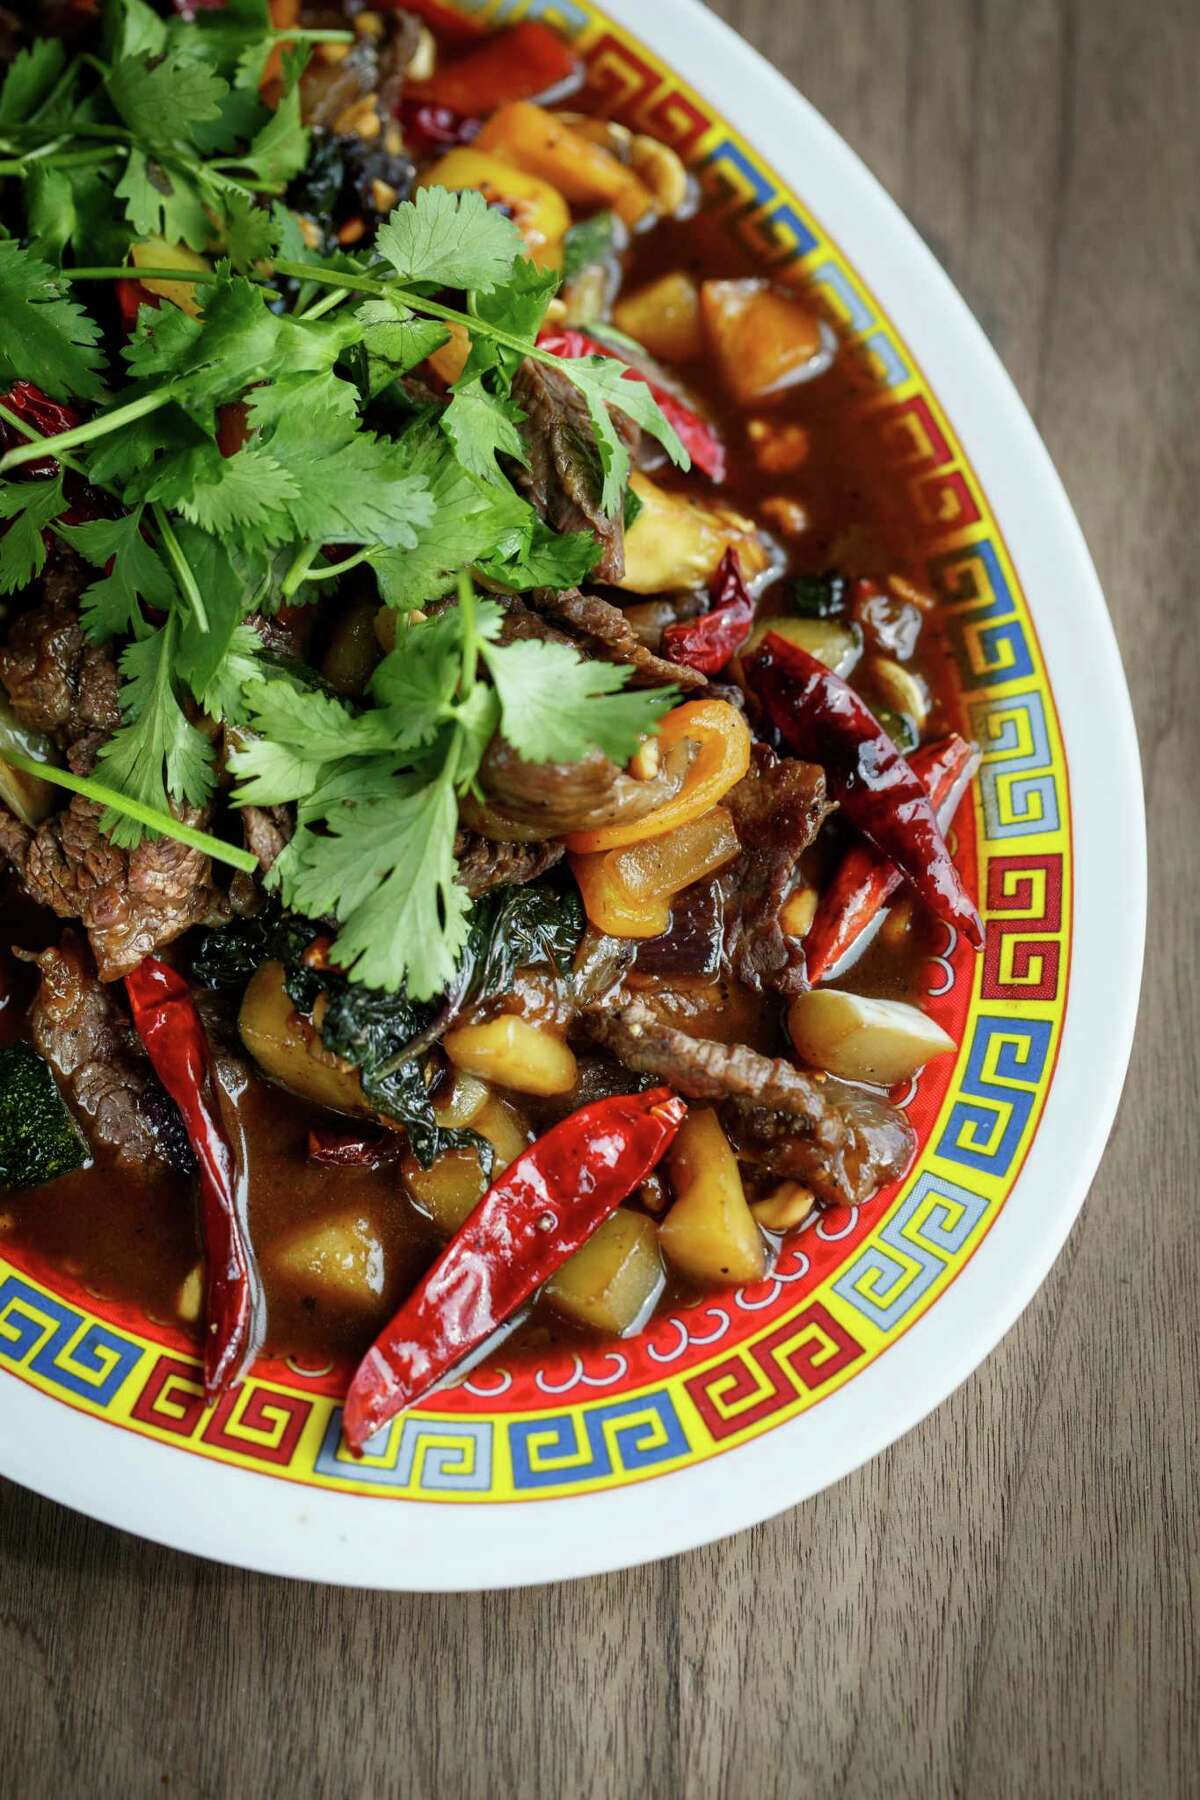 Mongolian Style Wagyu Beef at Underbelly.